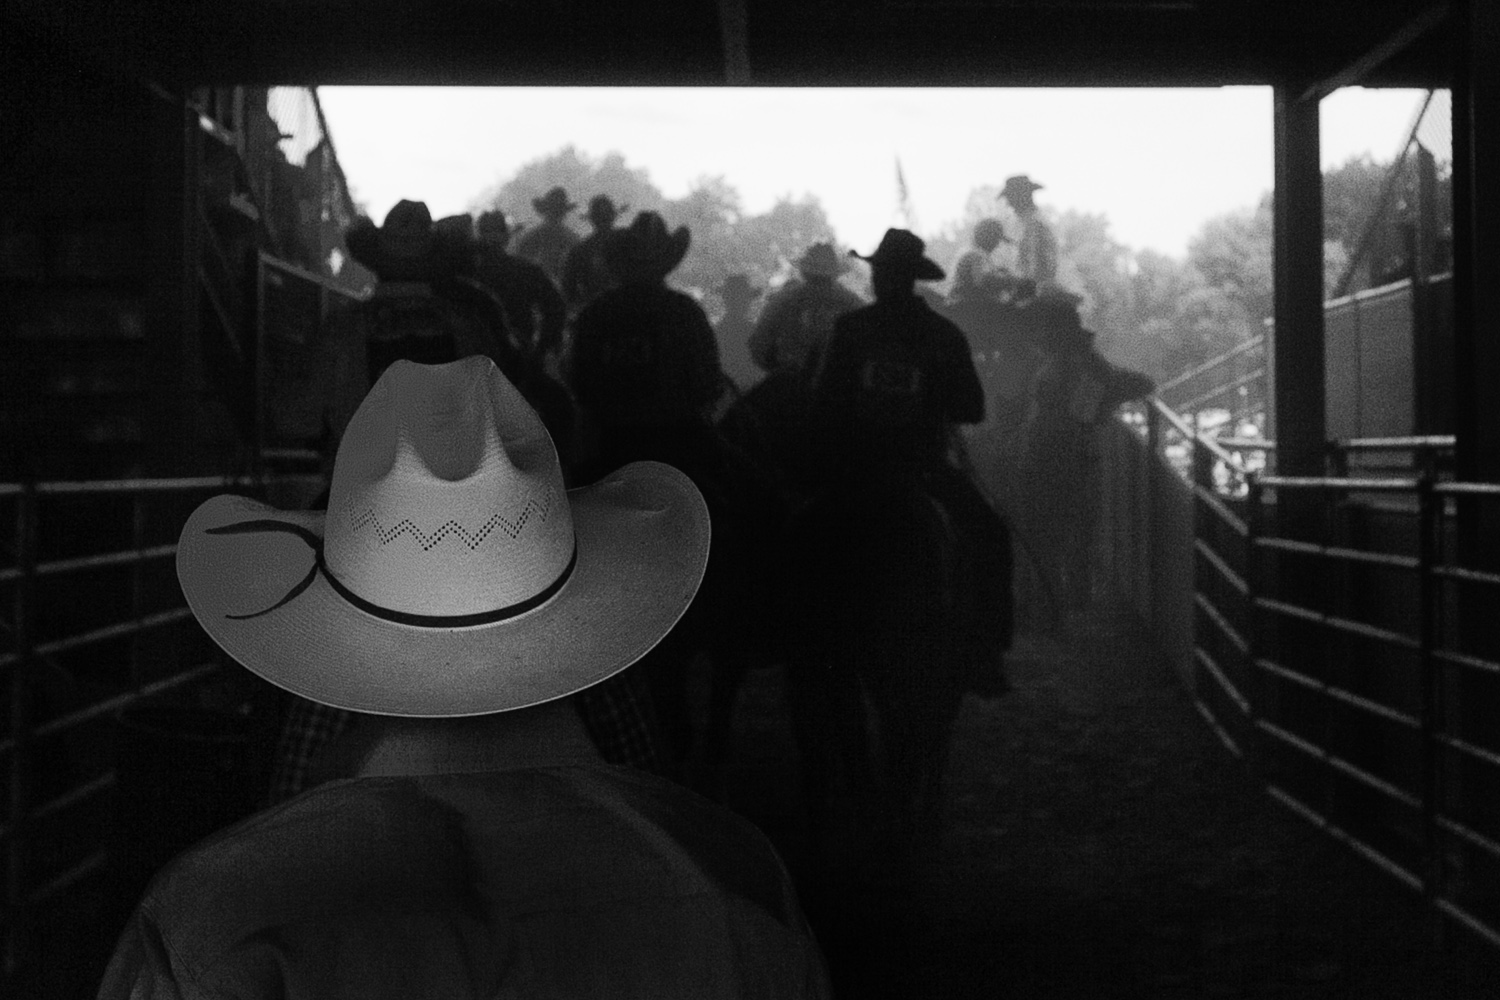 The Professional Rodeo Cowboys Association organizes over 100 rodeos throughout the year that take place all across America. Each event brings together cowboys from many areas to participate in the competition.